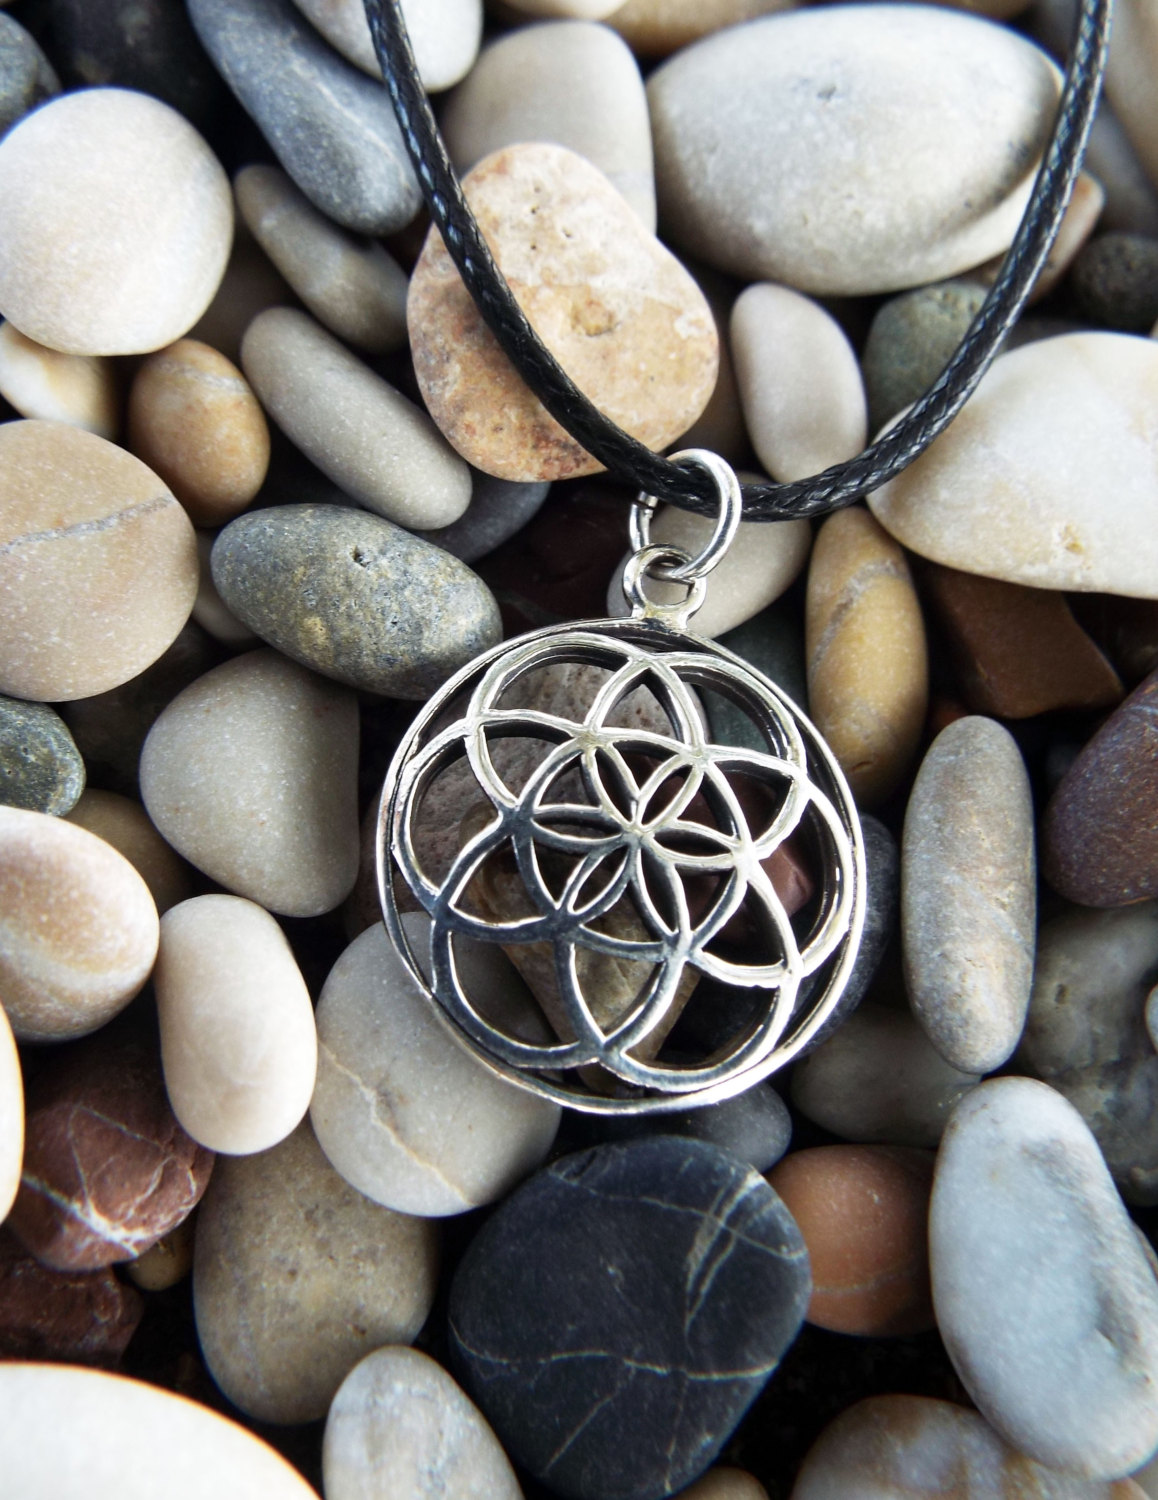 Flower of life seed of life pendant silver handmade sterling 925 flower of life seed of life pendant silver handmade sterling 925 necklace protection ancient symbol necklace mozeypictures Gallery